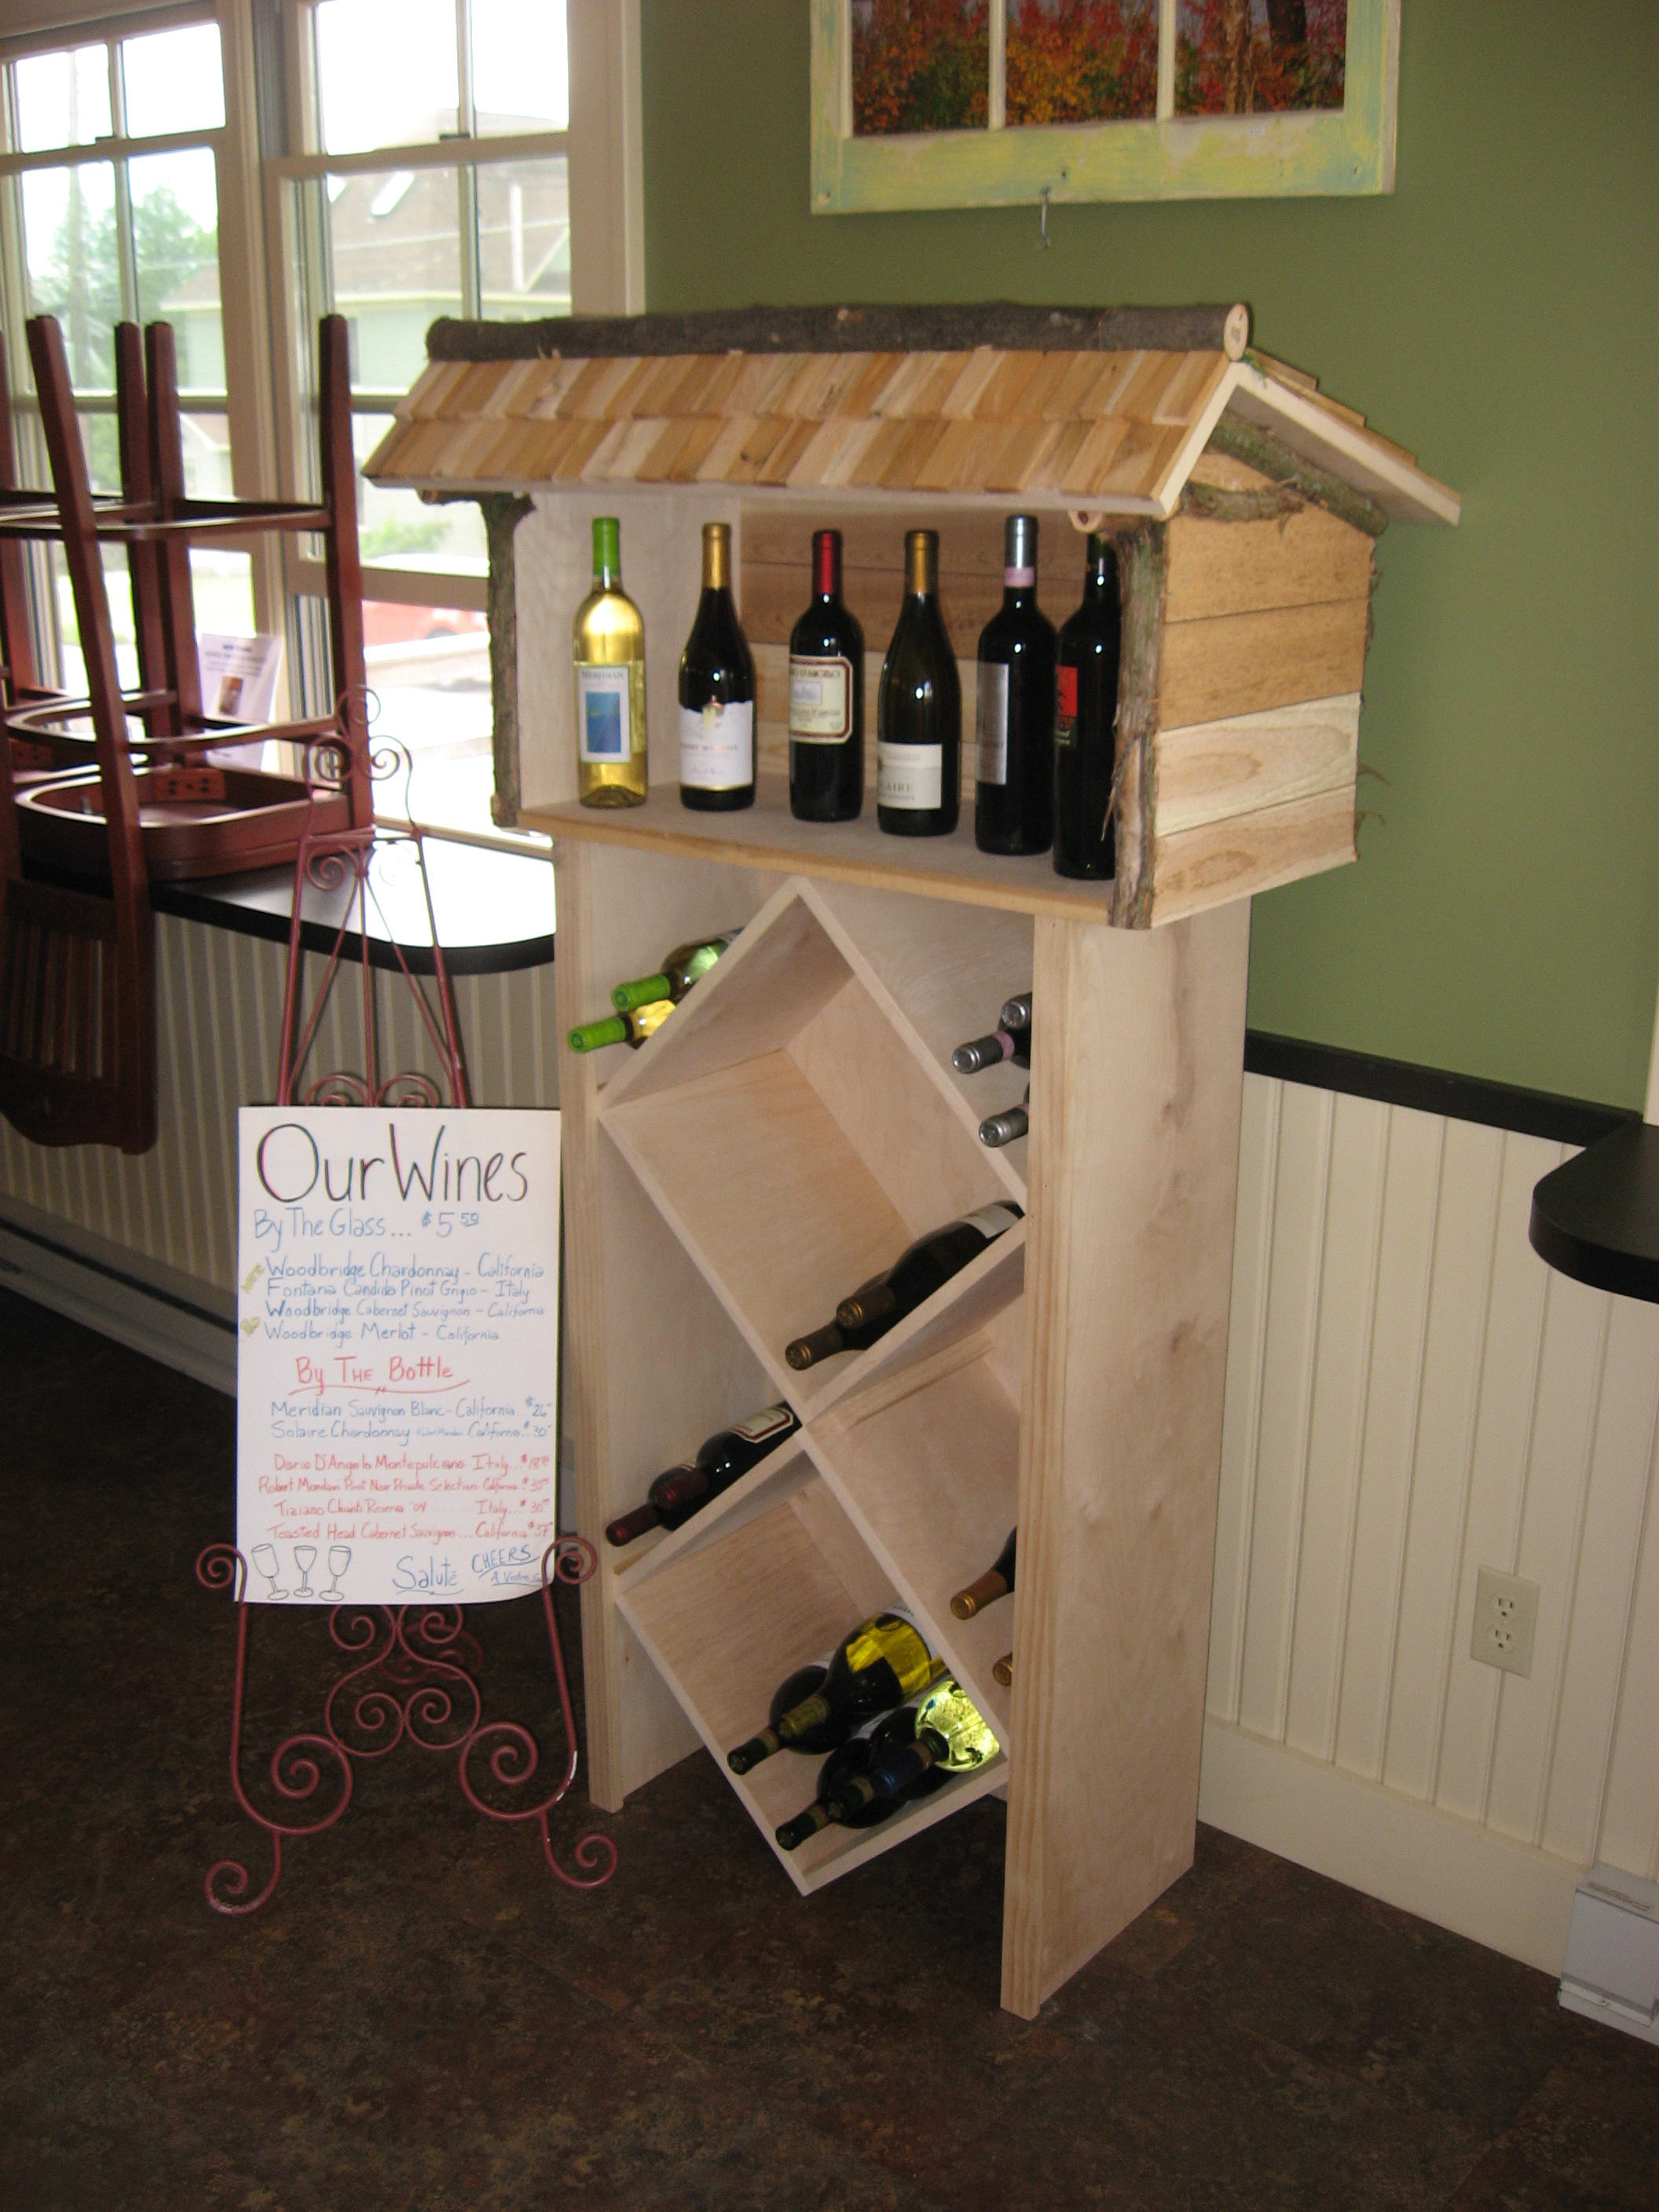 Adirondack-style lean-to wine rack